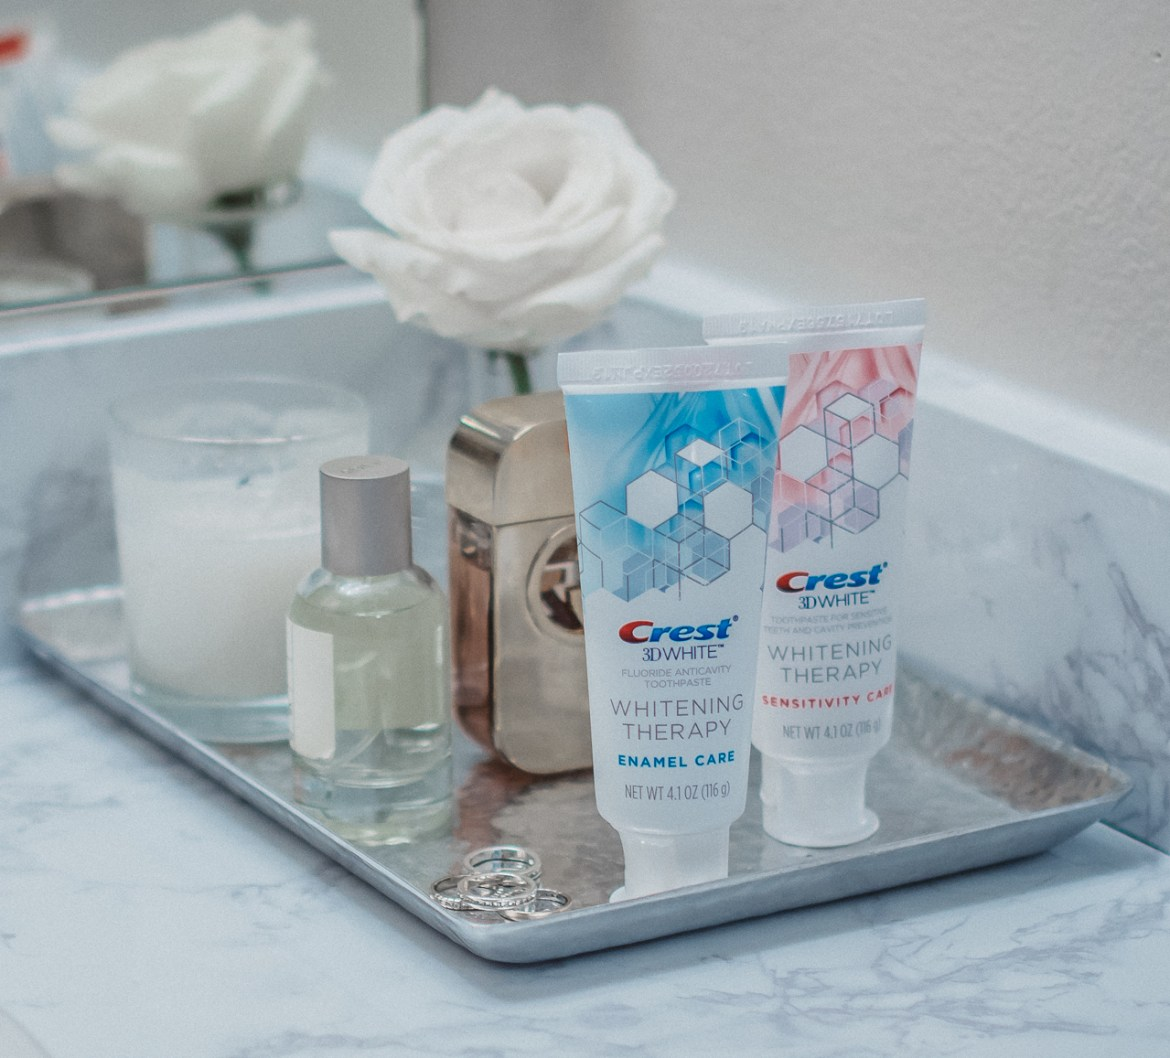 Crest sensitive care whitening toothpaste